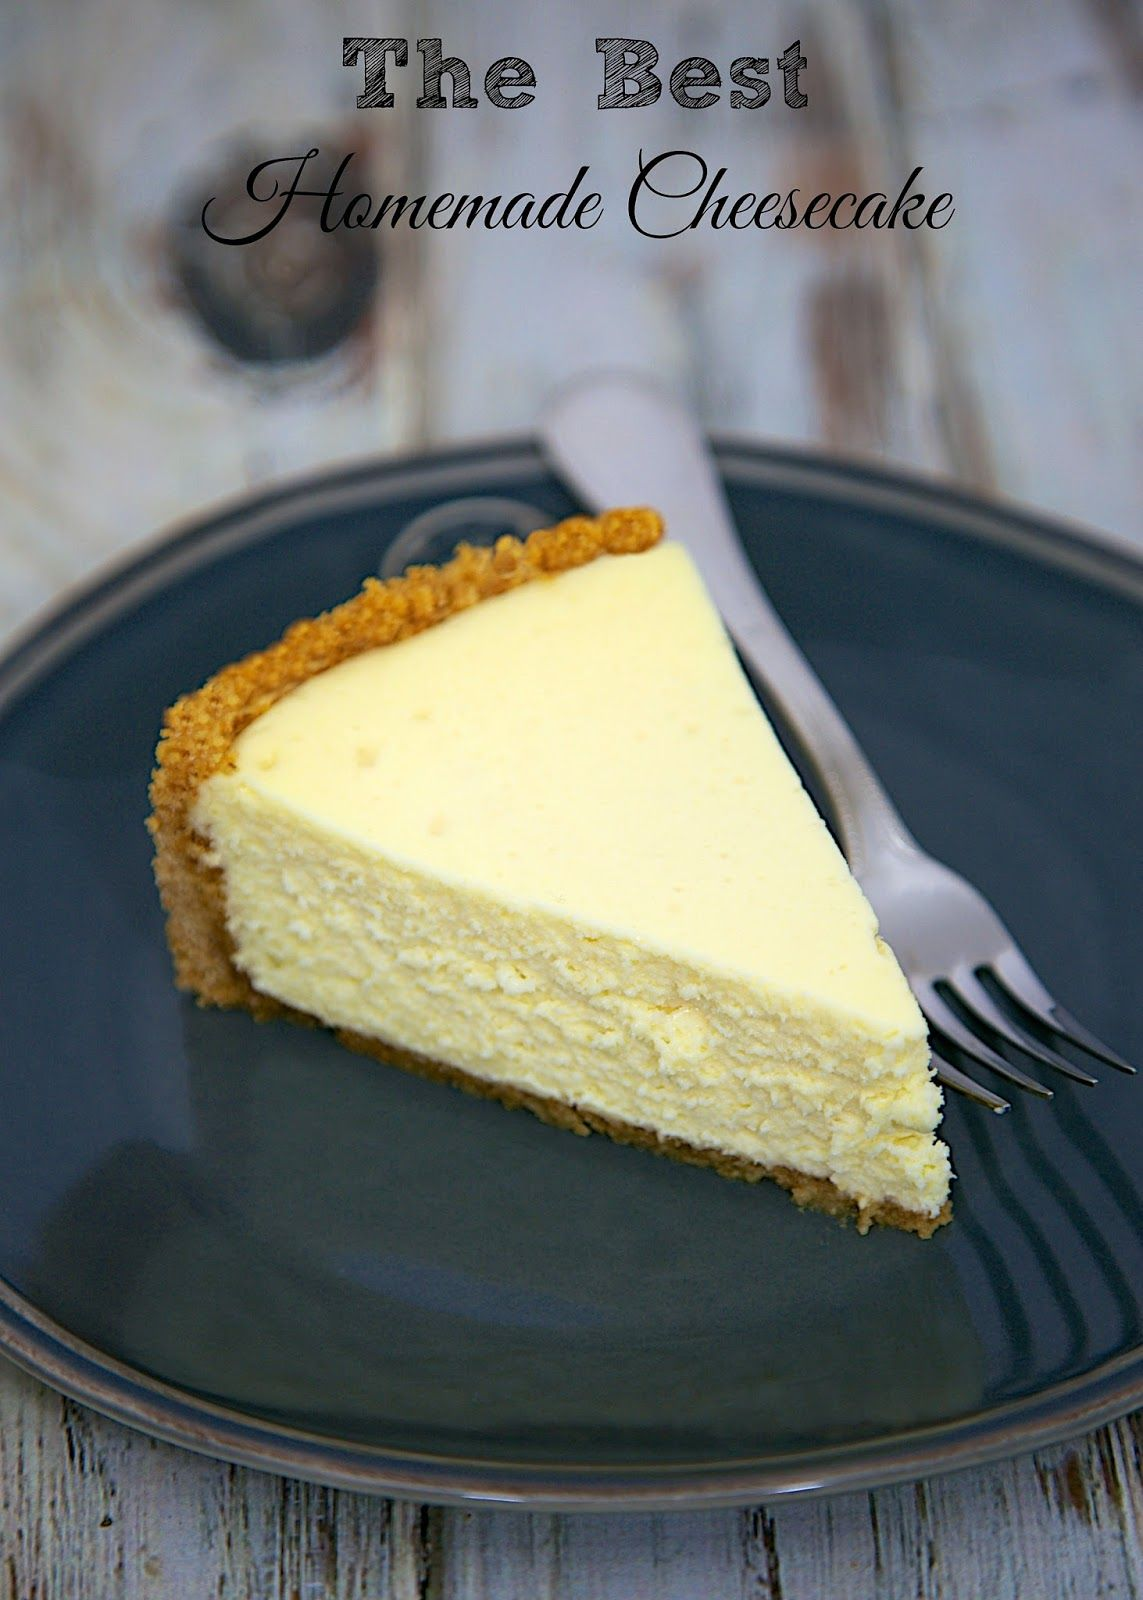 The Best Homemade Cheesecake In 2018 Baking Pinterest Double Layer Cheese Cake Original Get Secret For Lightest And Fluffiest Ever